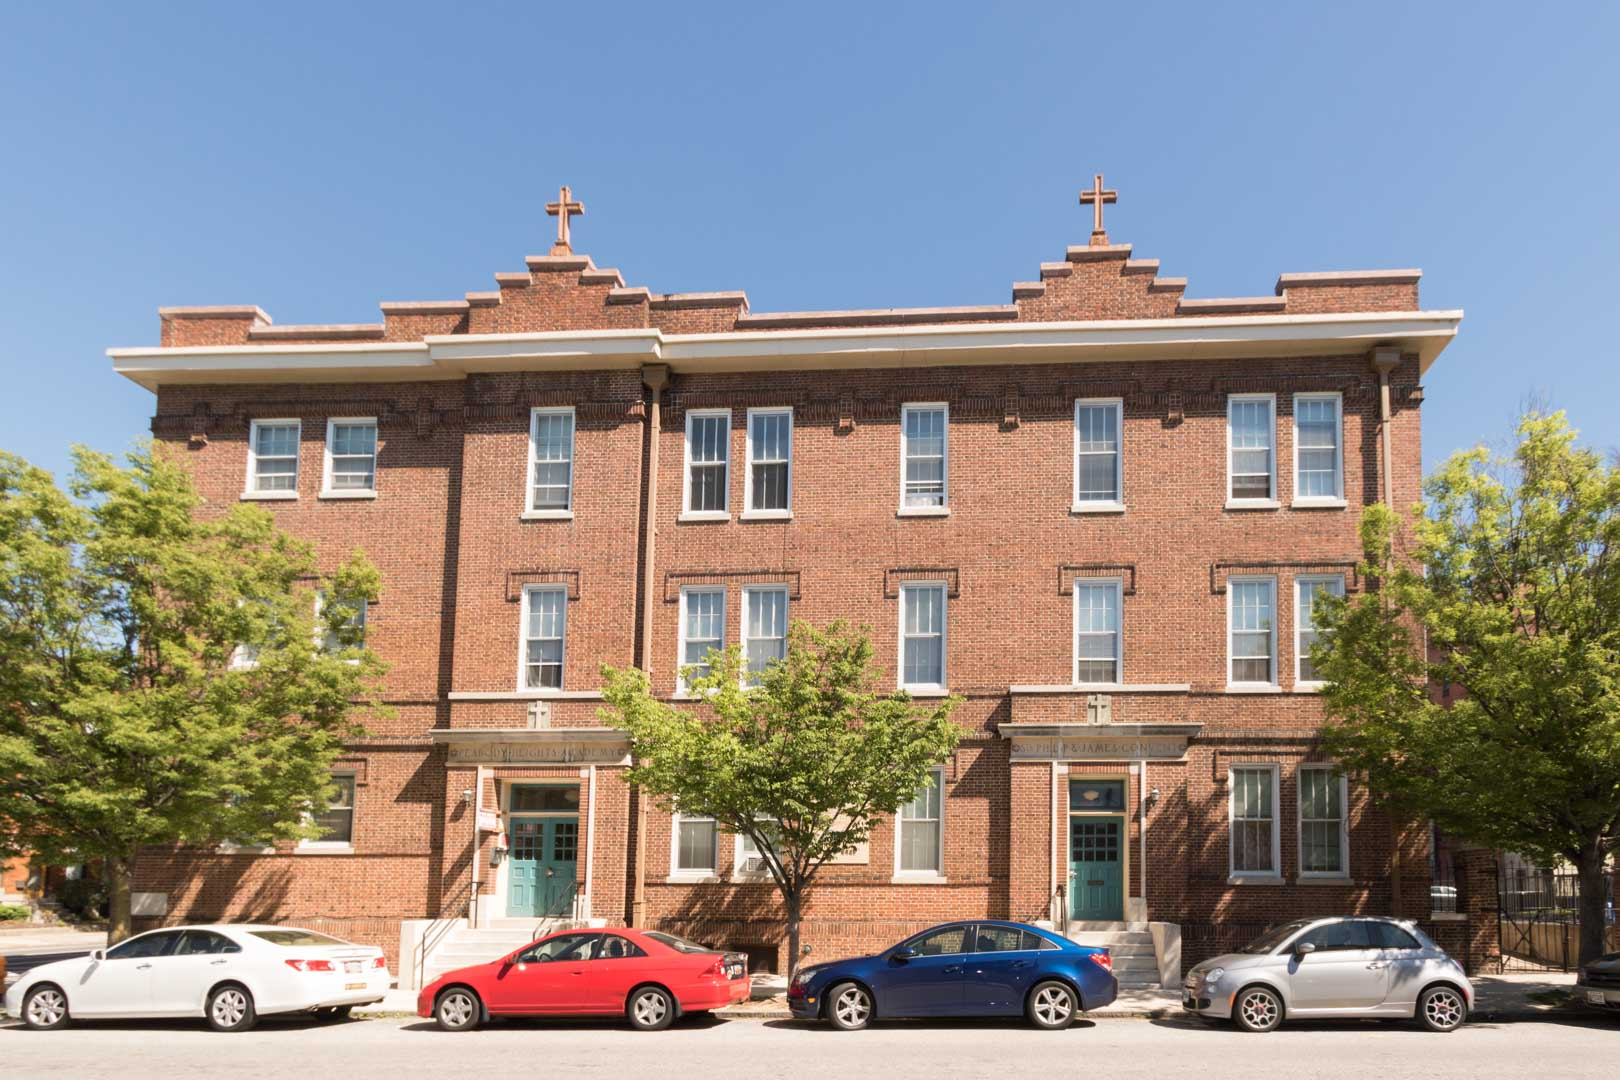 Bankruptcy trustees auction fully leased 22 unit apartment bankruptcy trustees auction fully leased 22 unit apartment building in the charles village neighborhood of baltimore city known as the peabody alex xflitez Choice Image